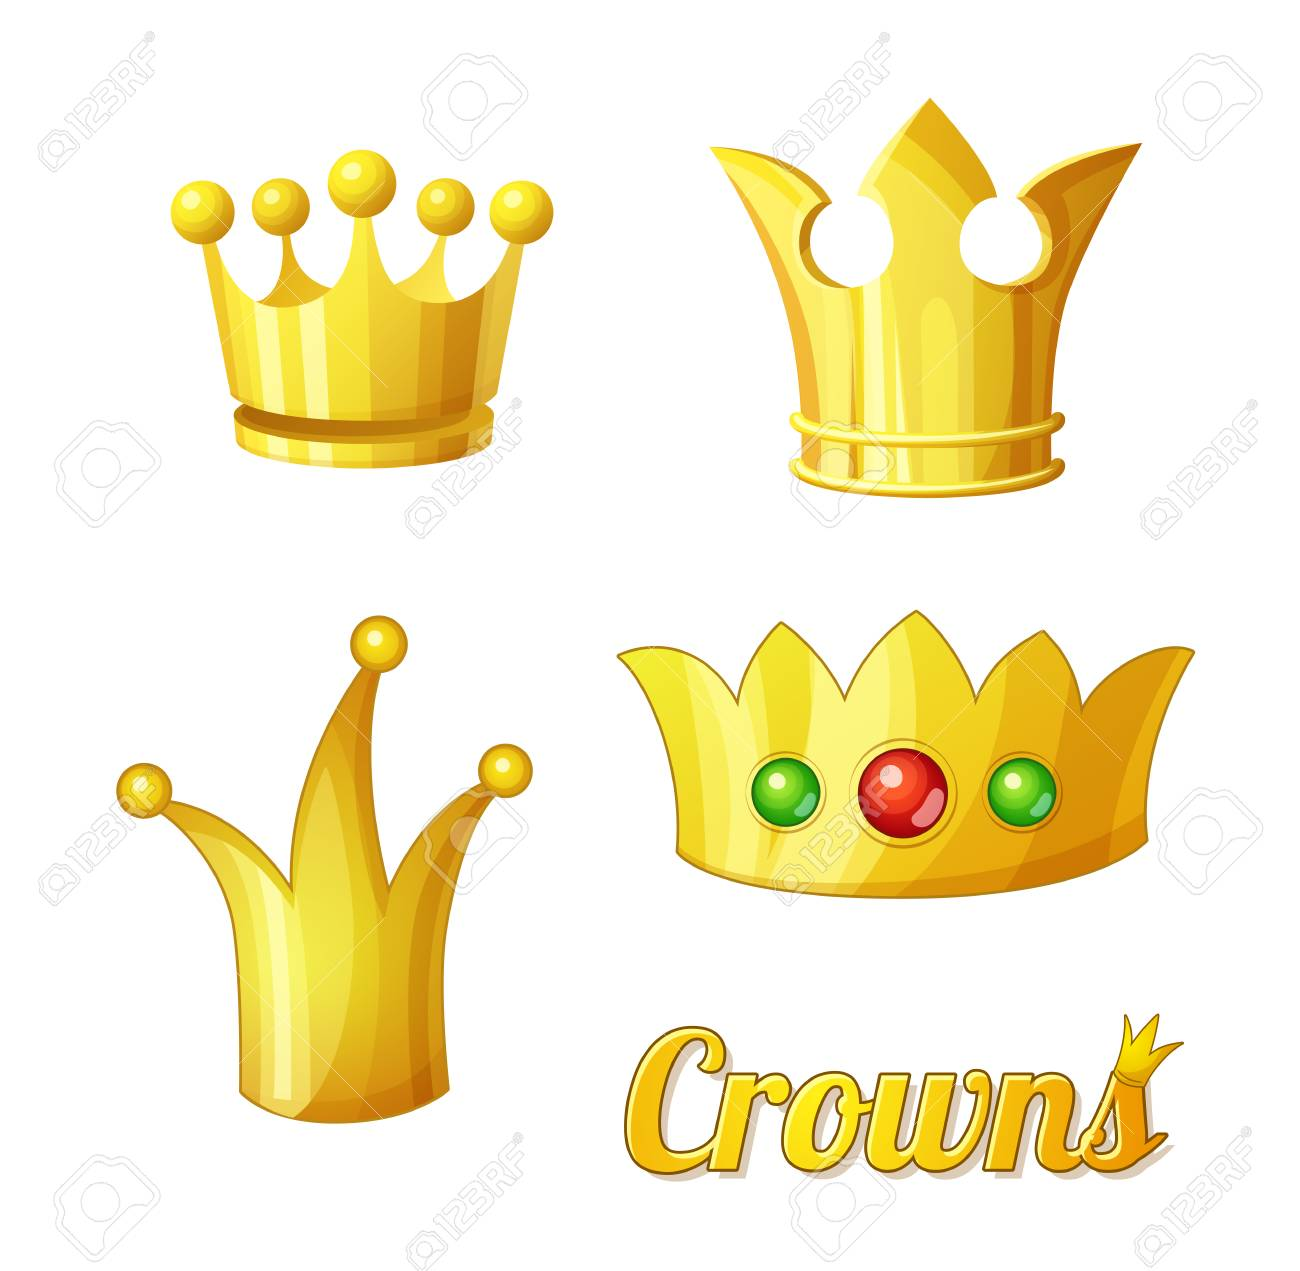 Cartoon Vector Golden Crowns Set For King And Queen Crowns Royalty Free Cliparts Vectors And Stock Illustration Image 93811530 Browse our queen crown cartoon images, graphics, and designs from +79.322 free vectors graphics. 123rf com